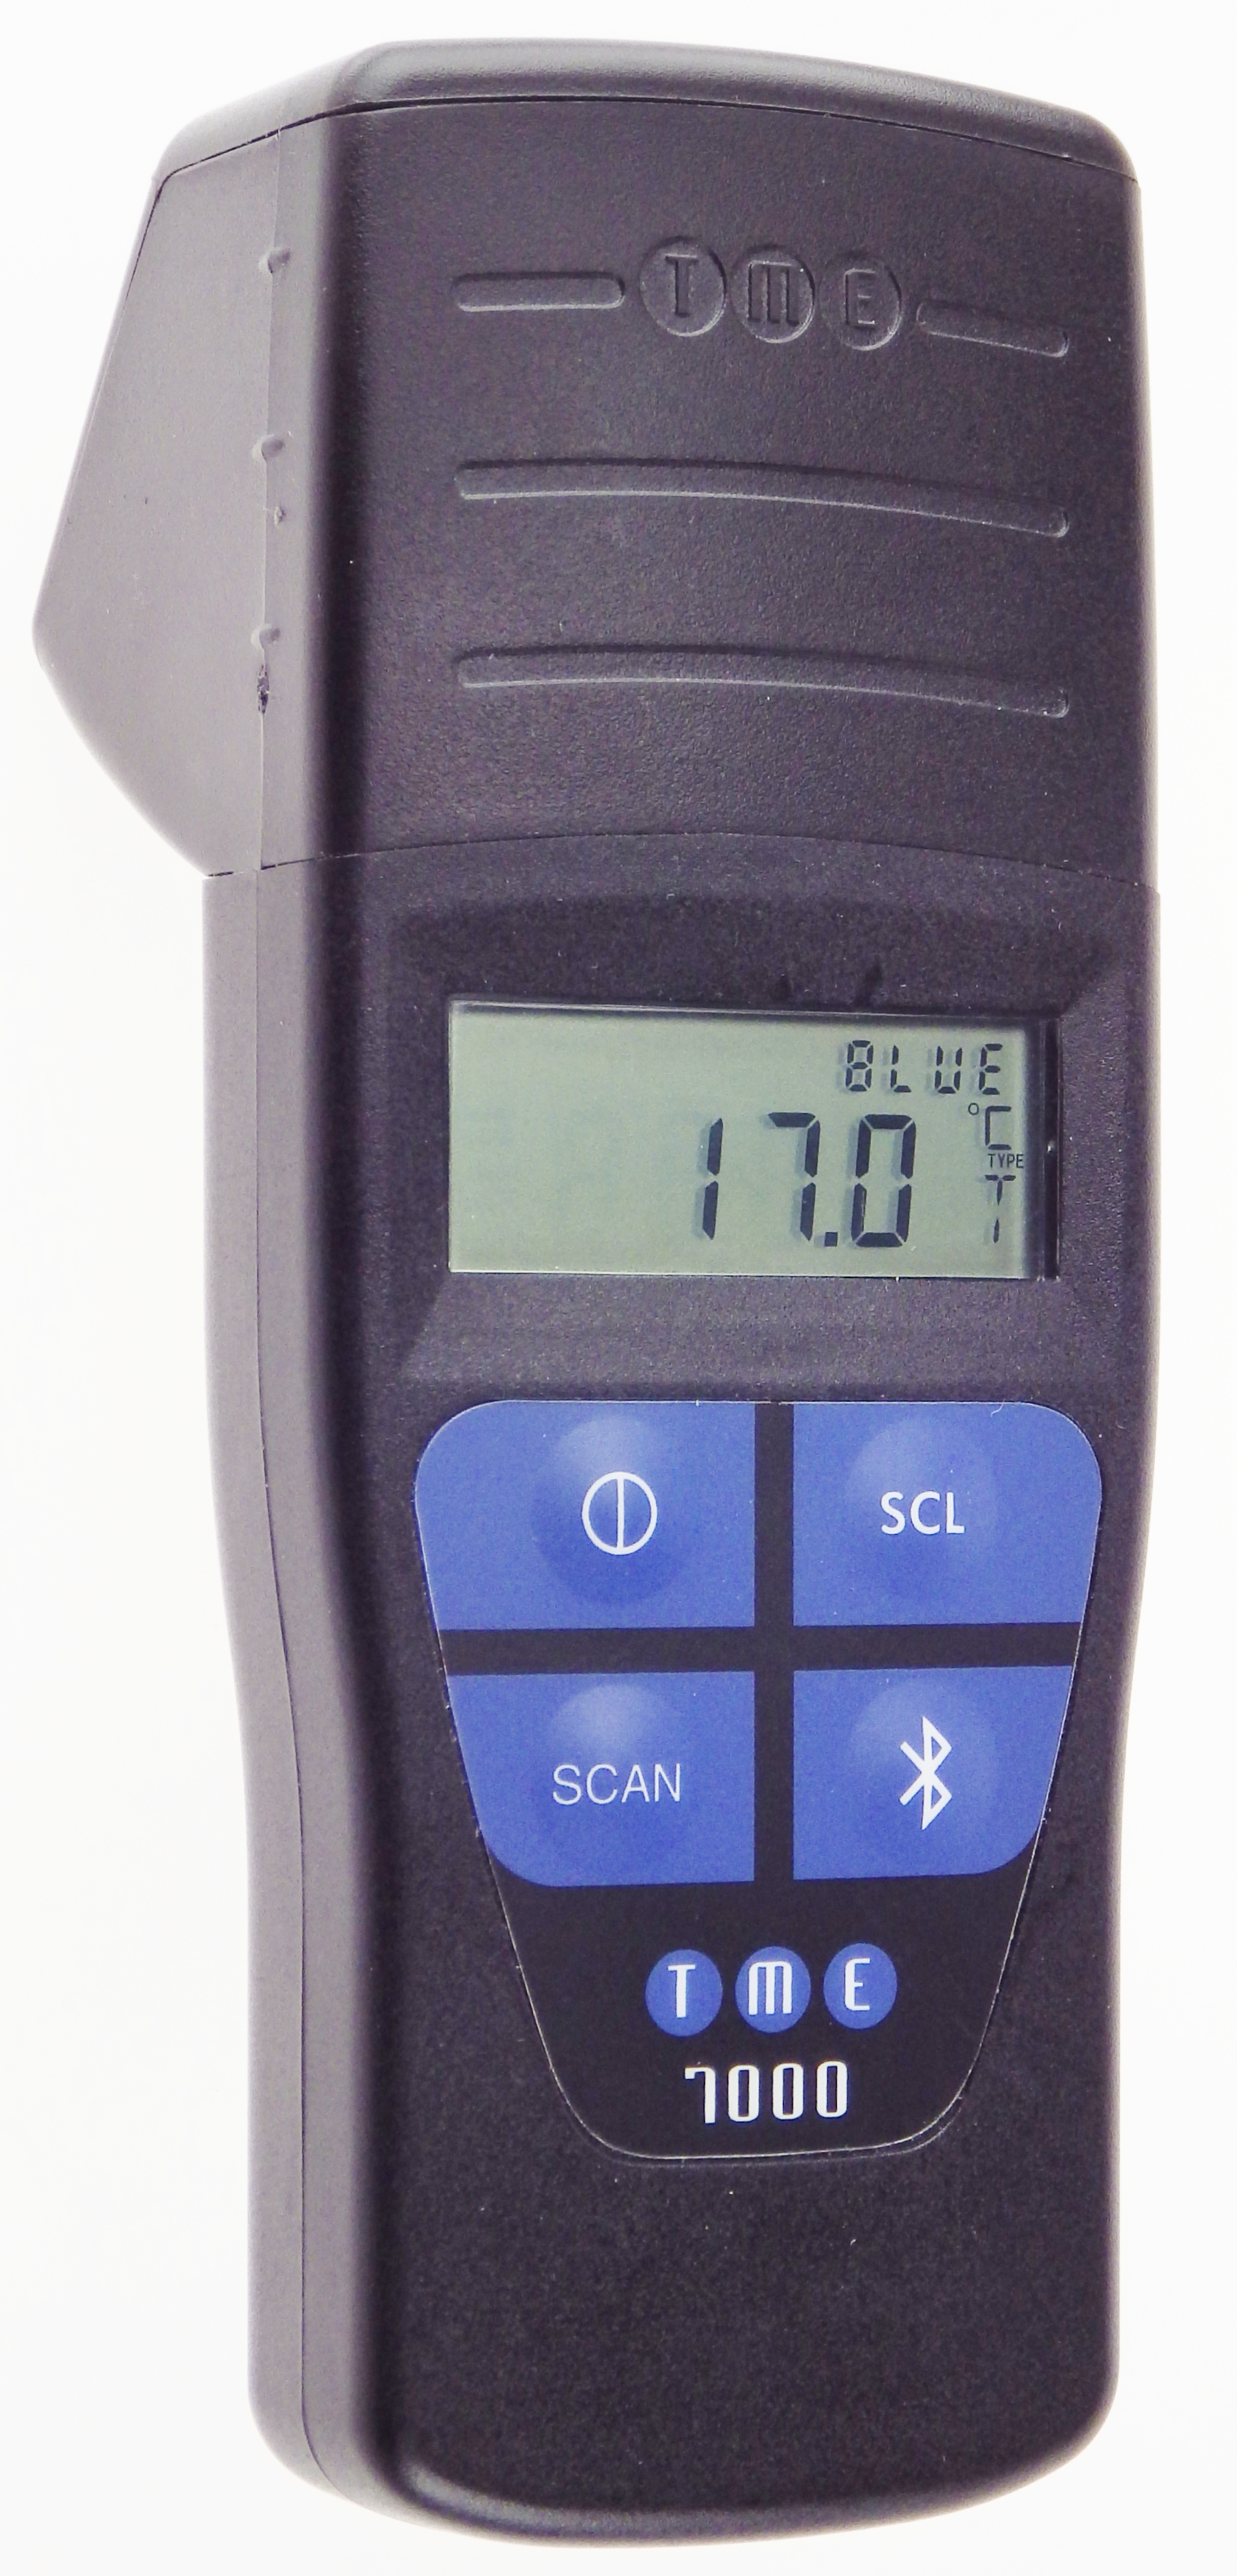 MM7005 ThermoBarScan Digital Handheld Thermometer with USB interface